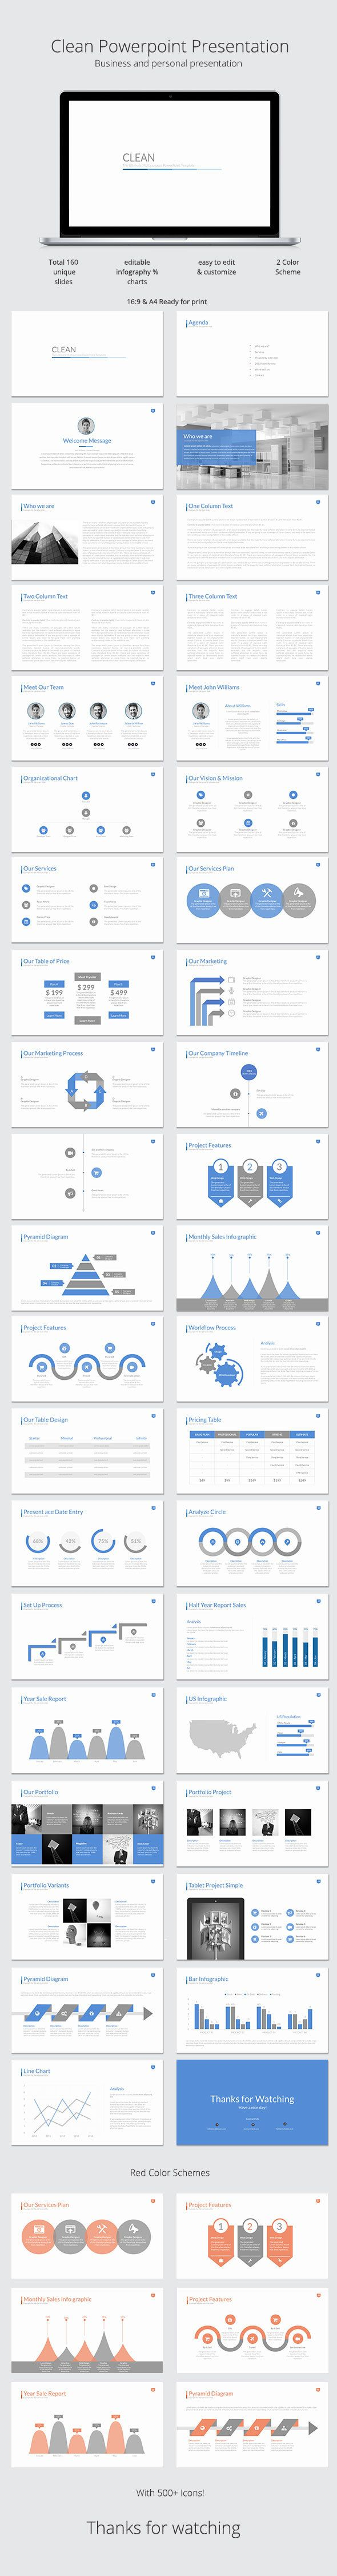 Coolmathgamesus  Scenic  Ideas About Powerpoint Presentations On Pinterest With Handsome Clean Powerpoint Template With Lovely Features Of Microsoft Powerpoint Also Powerpoint Backgound In Addition Powerpoint Presentation Timeline And Powerpoint Application For Mac As Well As How To Prepare Presentation In Powerpoint Additionally Add Sounds To Powerpoint From Pinterestcom With Coolmathgamesus  Handsome  Ideas About Powerpoint Presentations On Pinterest With Lovely Clean Powerpoint Template And Scenic Features Of Microsoft Powerpoint Also Powerpoint Backgound In Addition Powerpoint Presentation Timeline From Pinterestcom